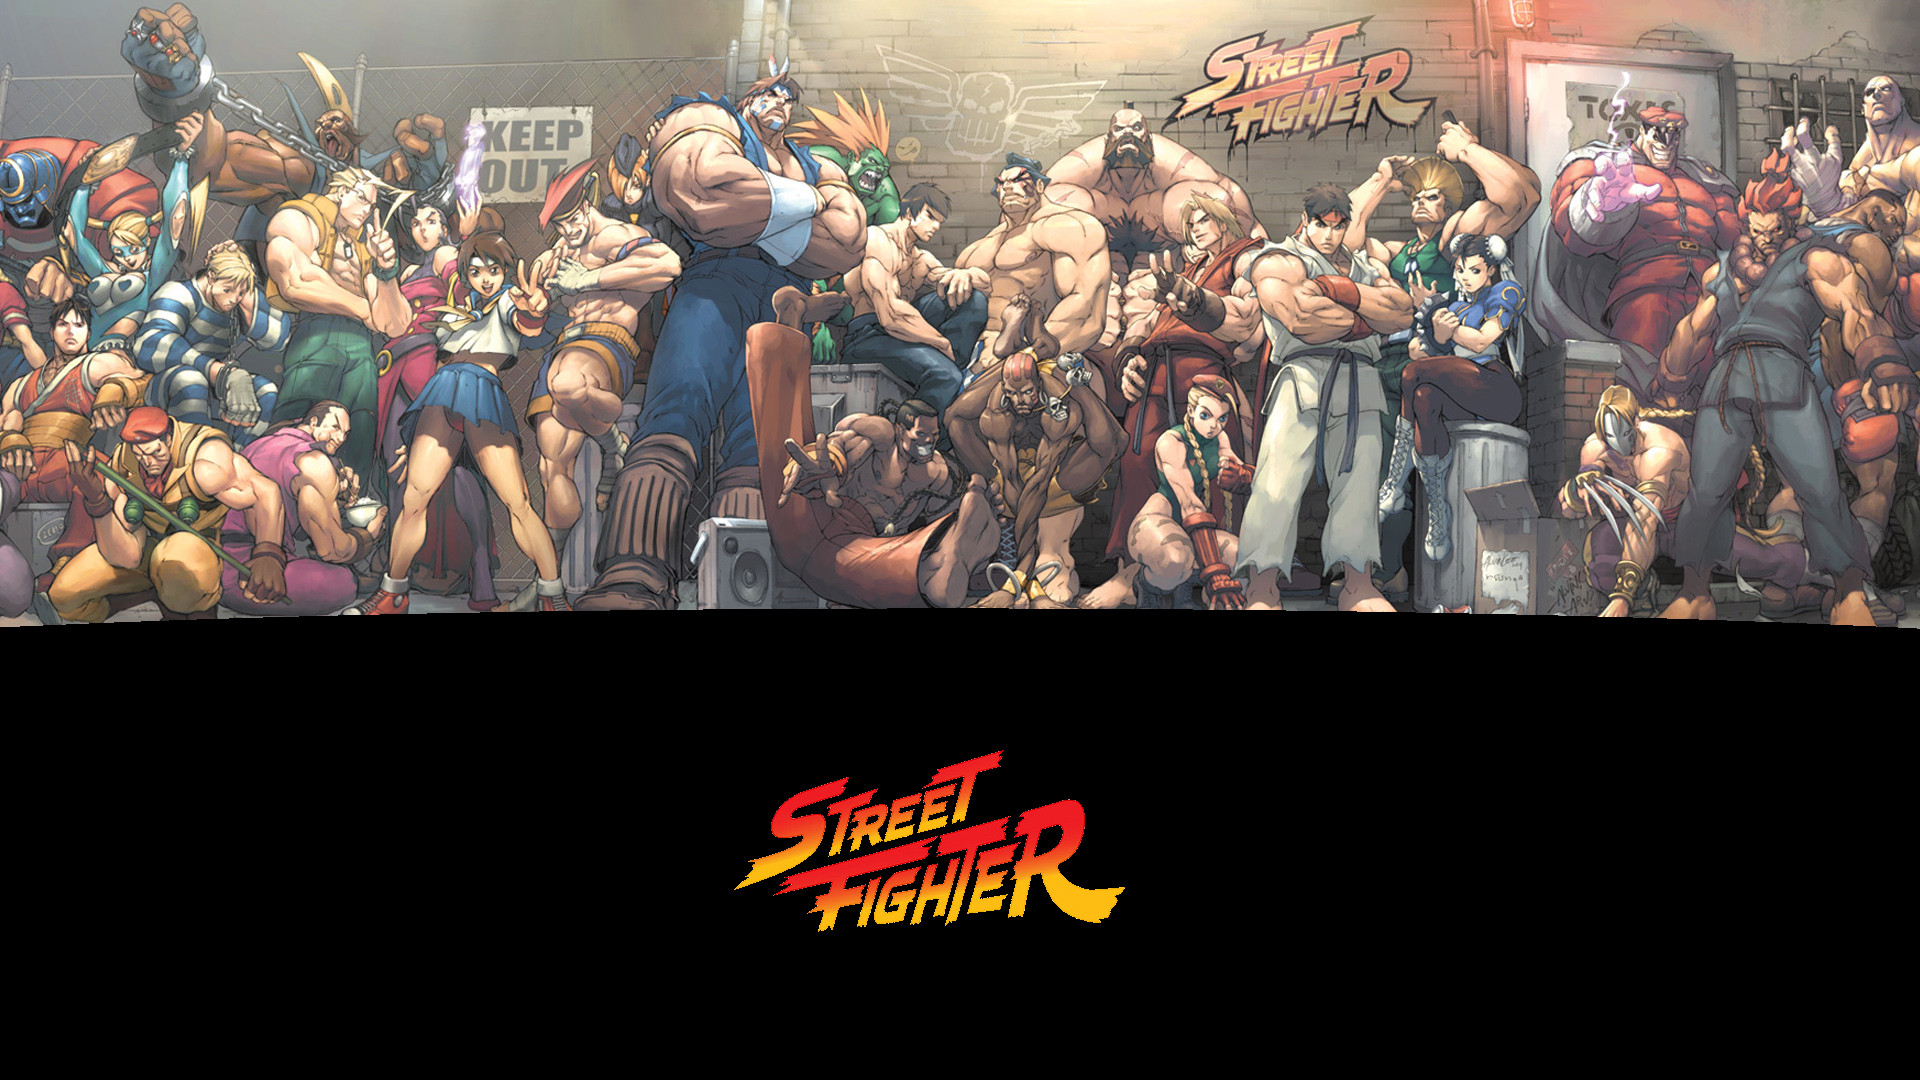 241 Street Fighter HD Wallpapers | Backgrounds – Wallpaper Abyss – Page 3